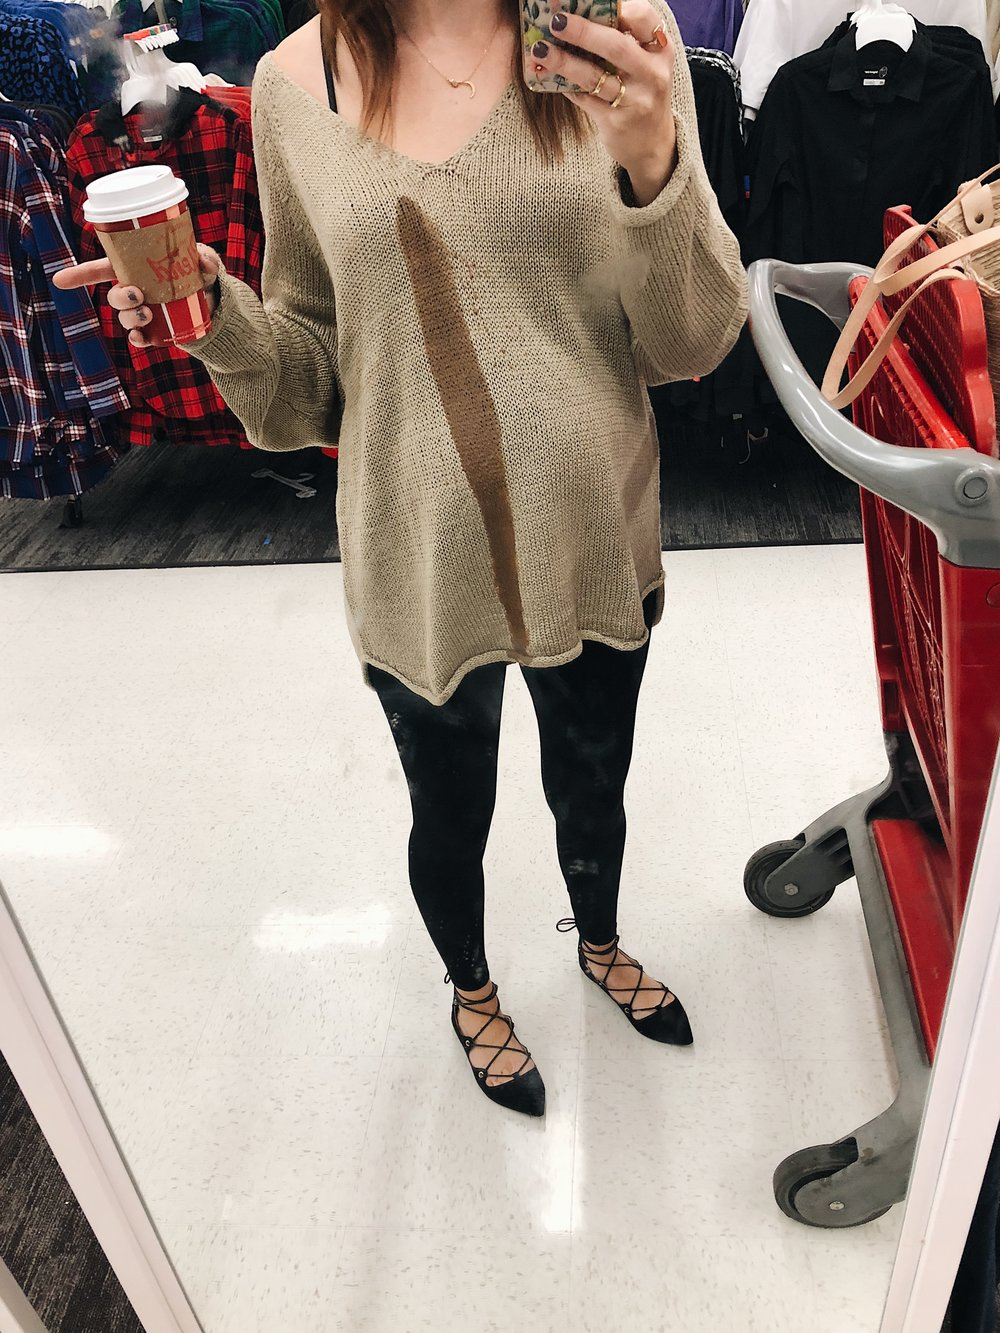 Remember that one time i spilled coffee all over myself in the middle of target? Me too.